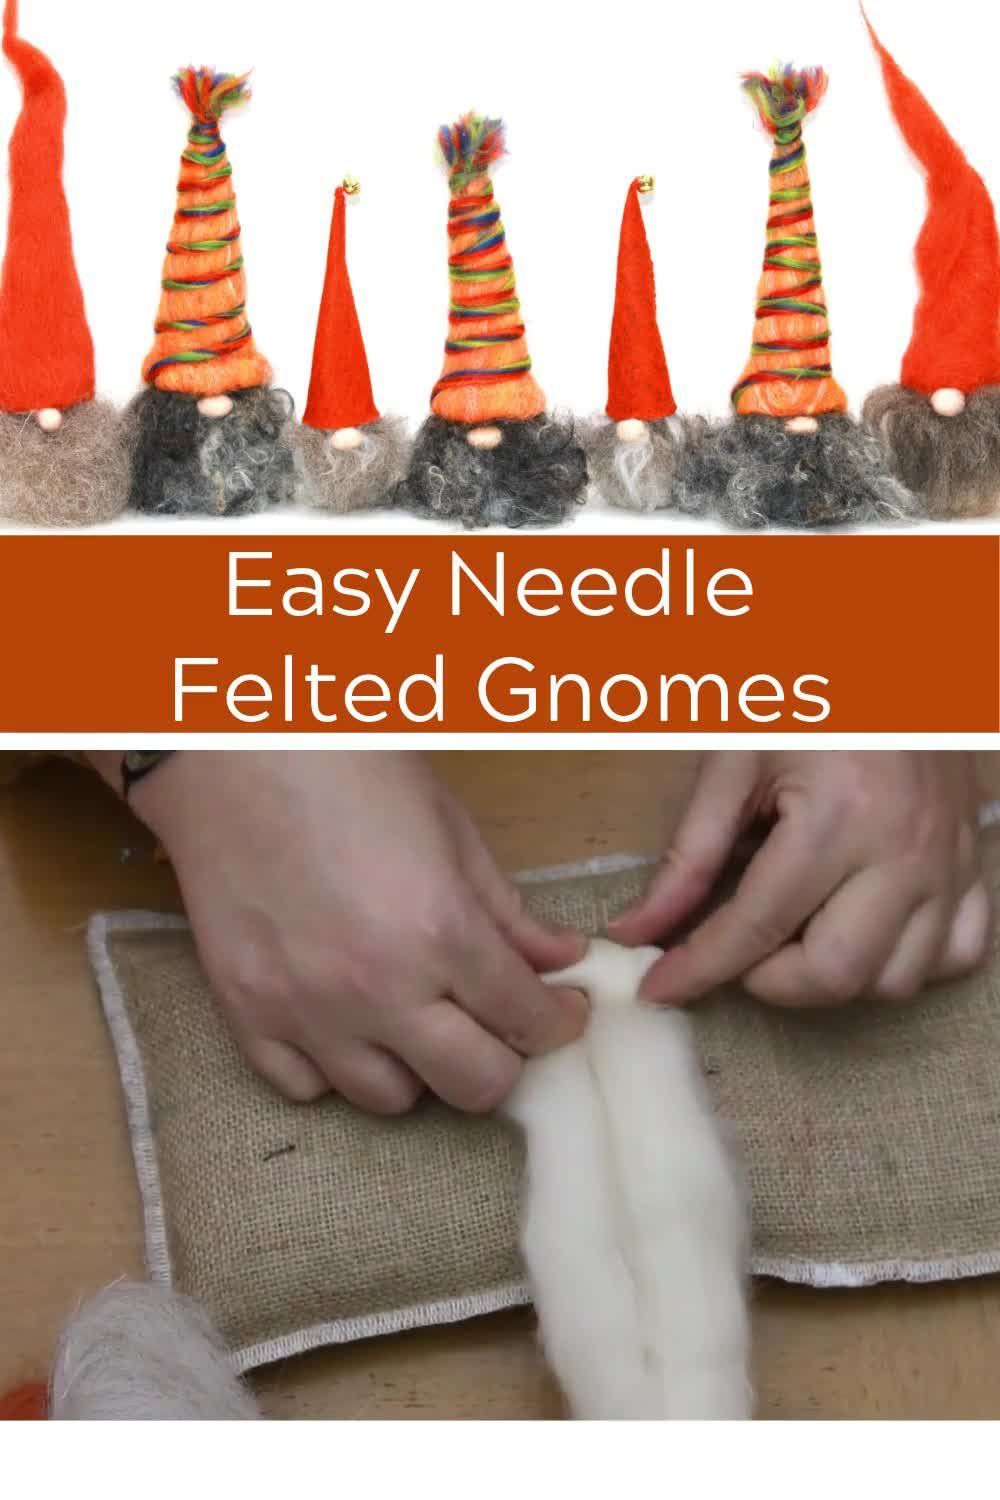 Easy Needle Felted Gnome - From wool to gnome in 3